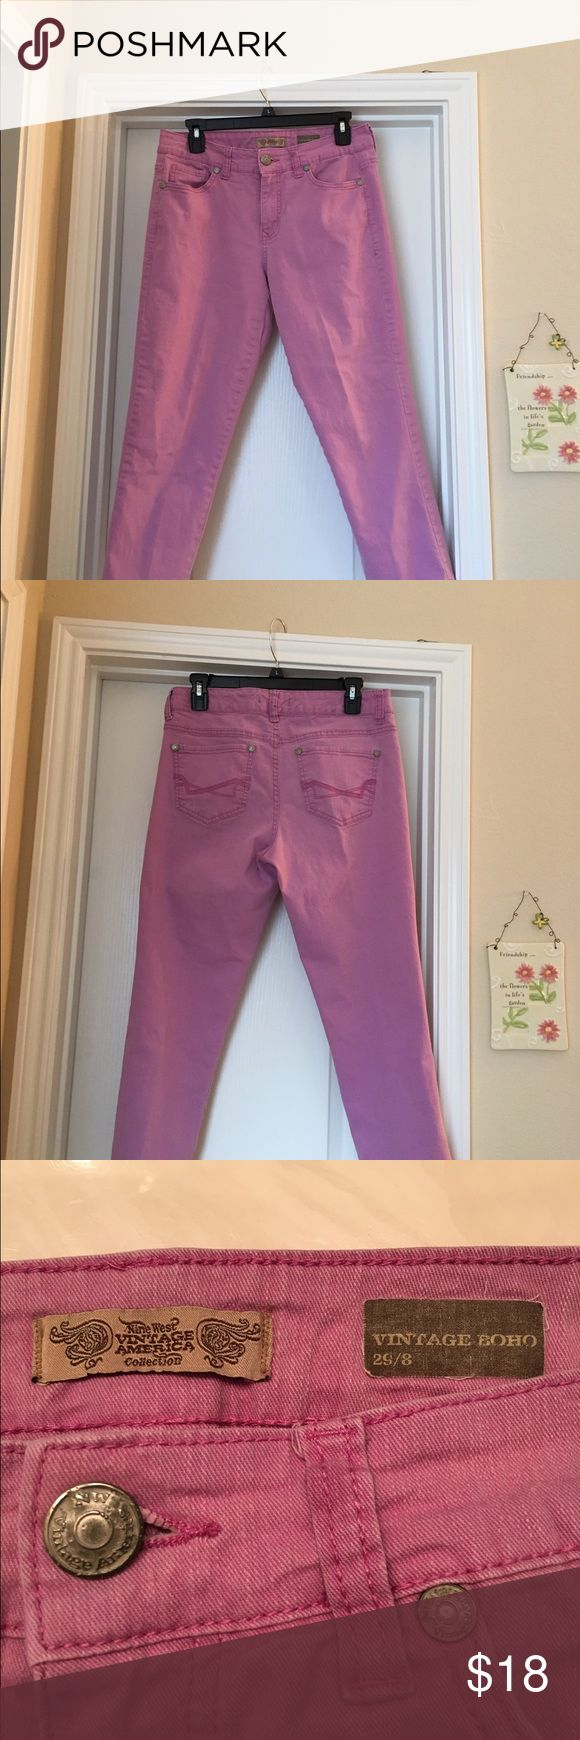 """AWESOME lavender vintage jeans!😎 These are super duper cute! They are cropped, 23.5"""" inseam, 9.5"""" front rise, 16"""" waist. If I could lose 5lb., I'd keep them for sure! Pic1&2 are closer to actual color. You'll love them! 💜💜.    If you want additional measurements, please ask before purchasing! Nine West Jeans Ankle & Cropped"""